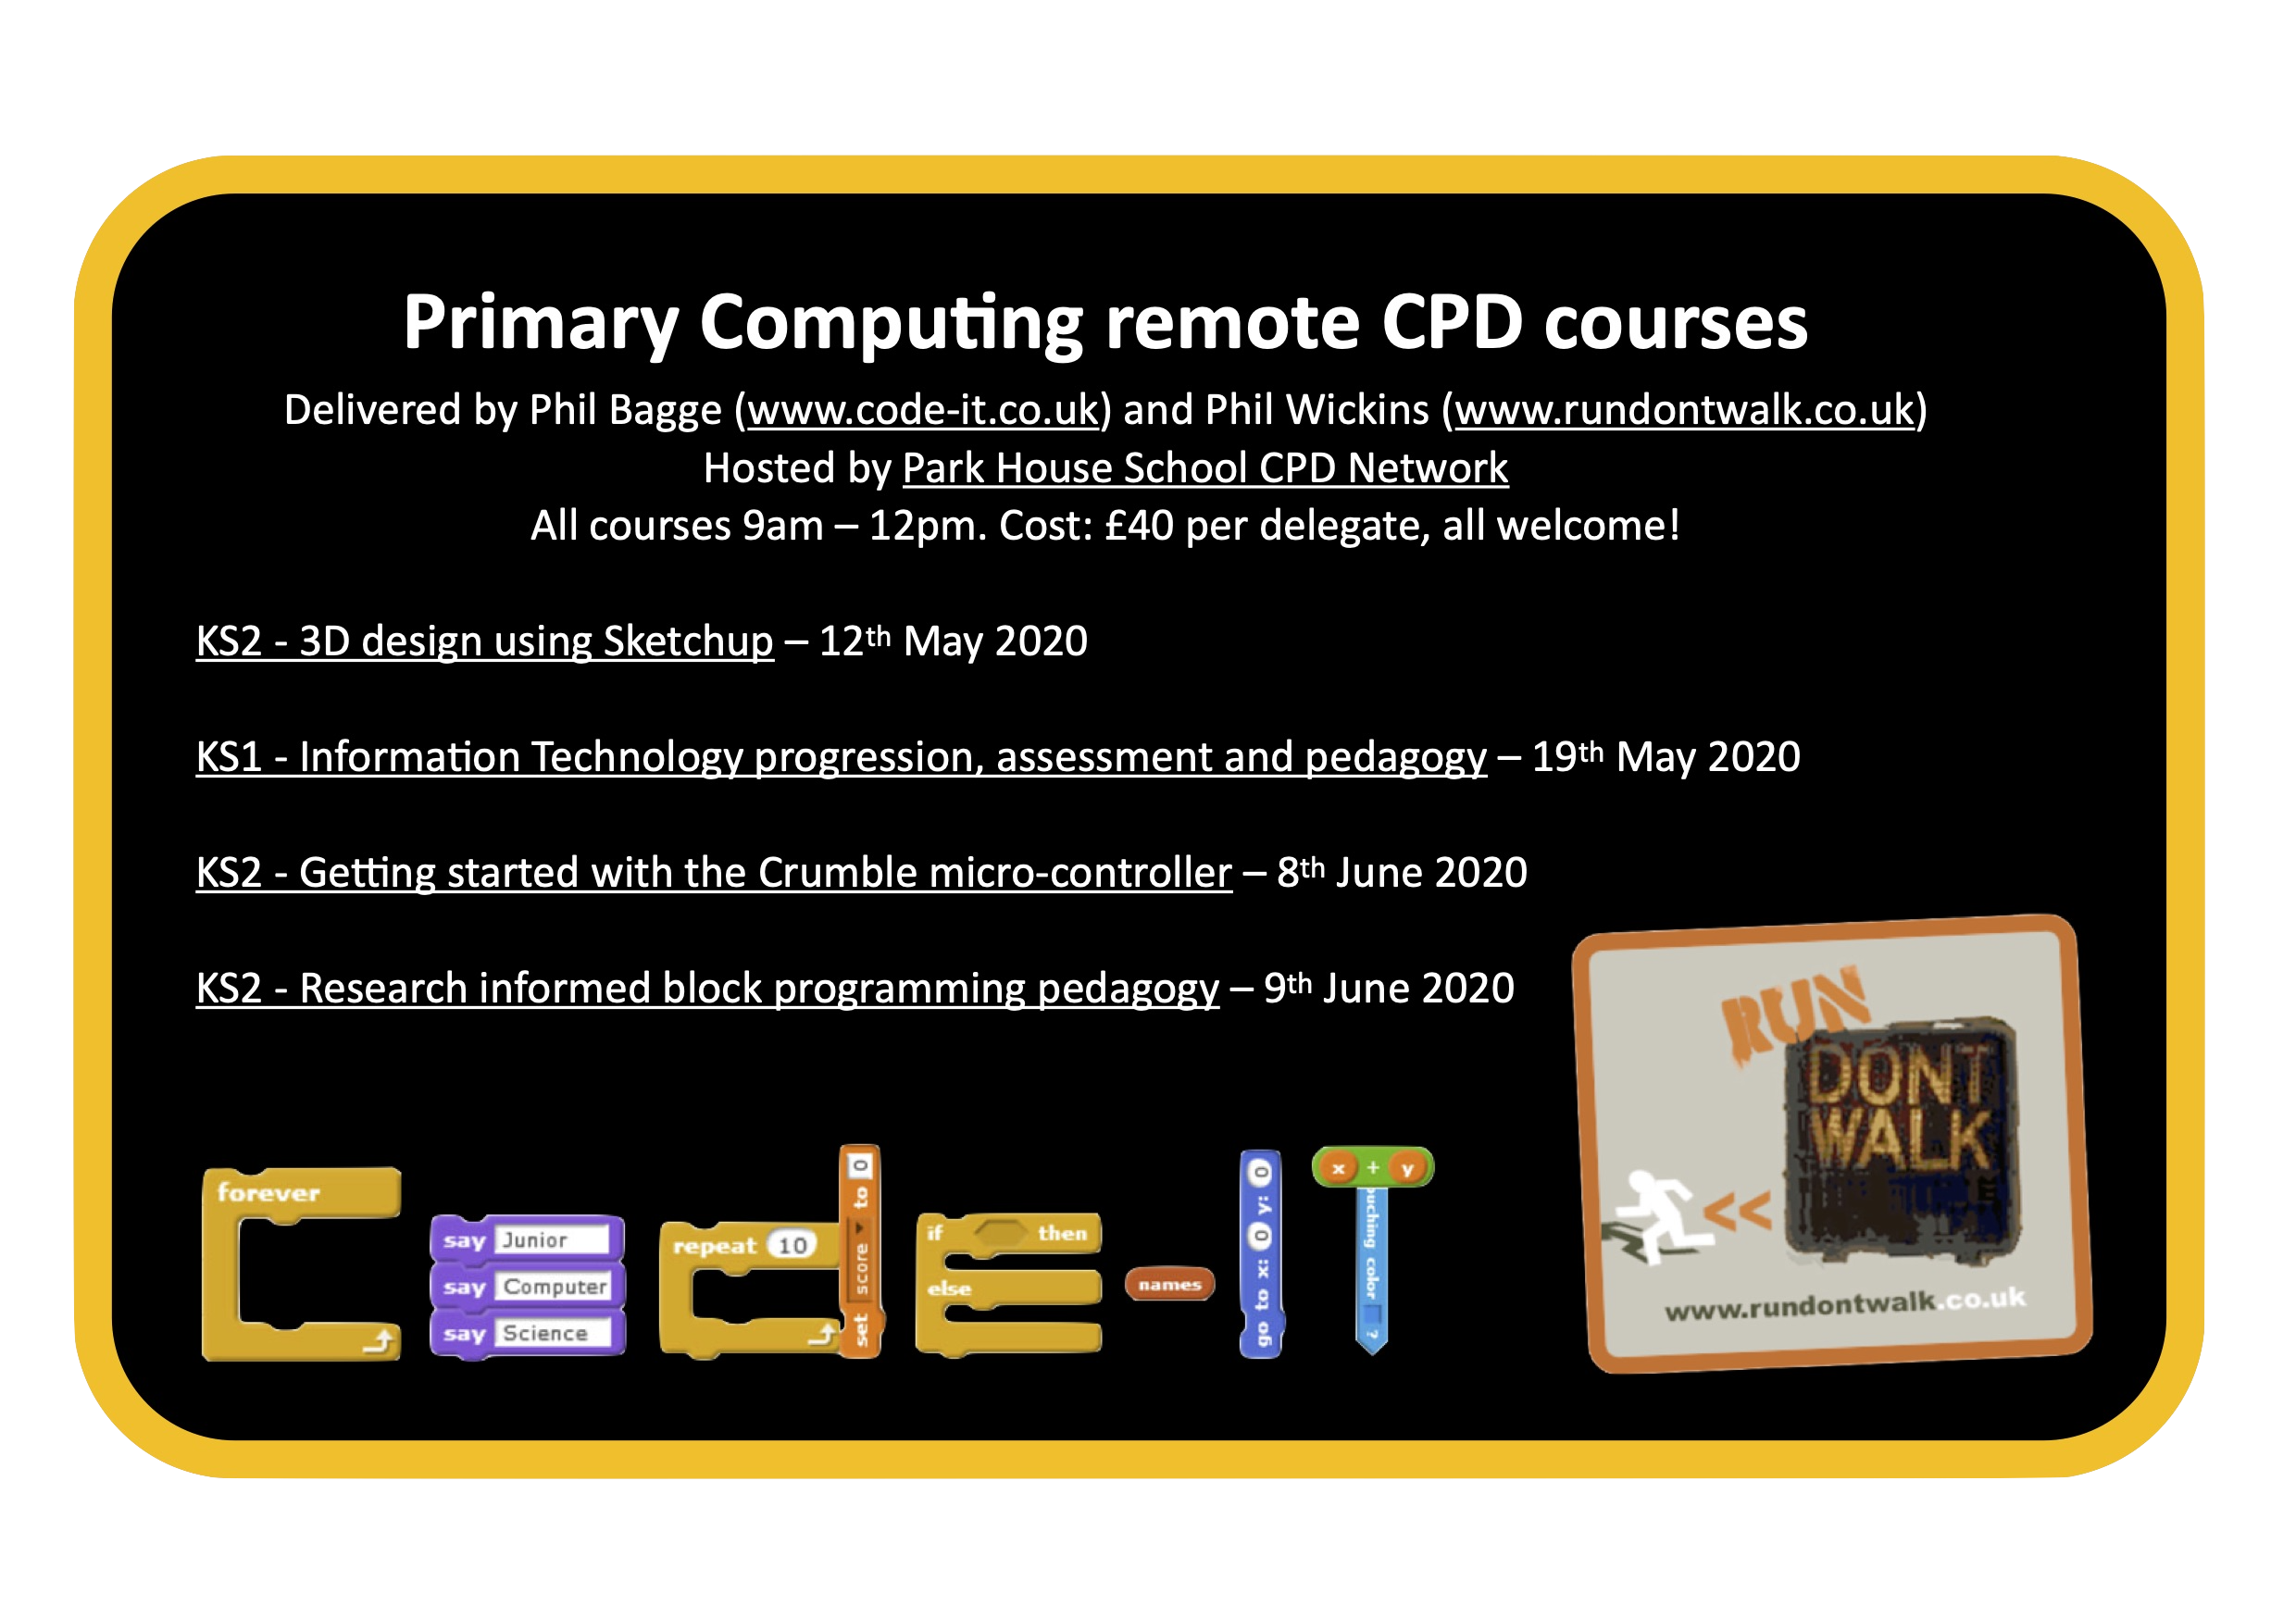 Primary Computing remote CPD courses